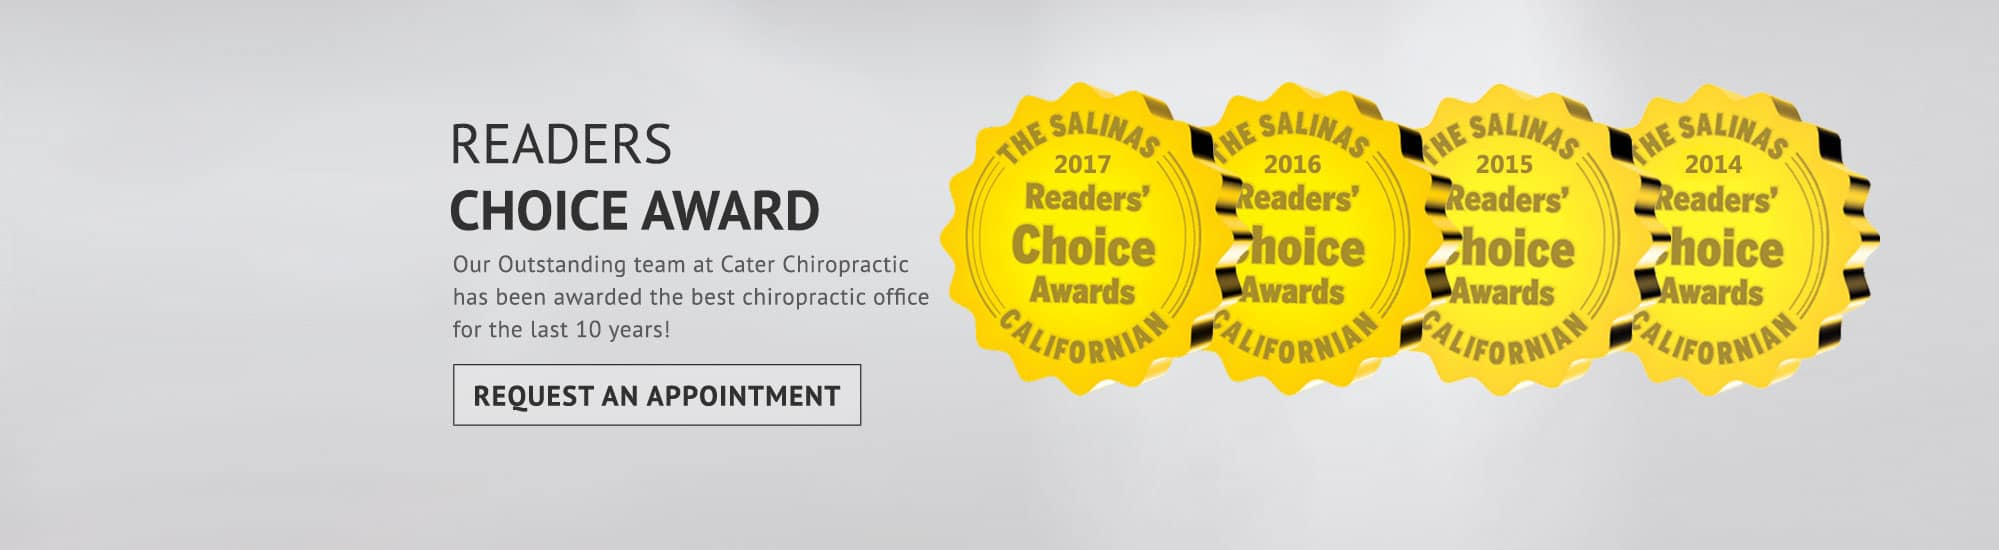 Cater Chiropractic Readers Choice Award